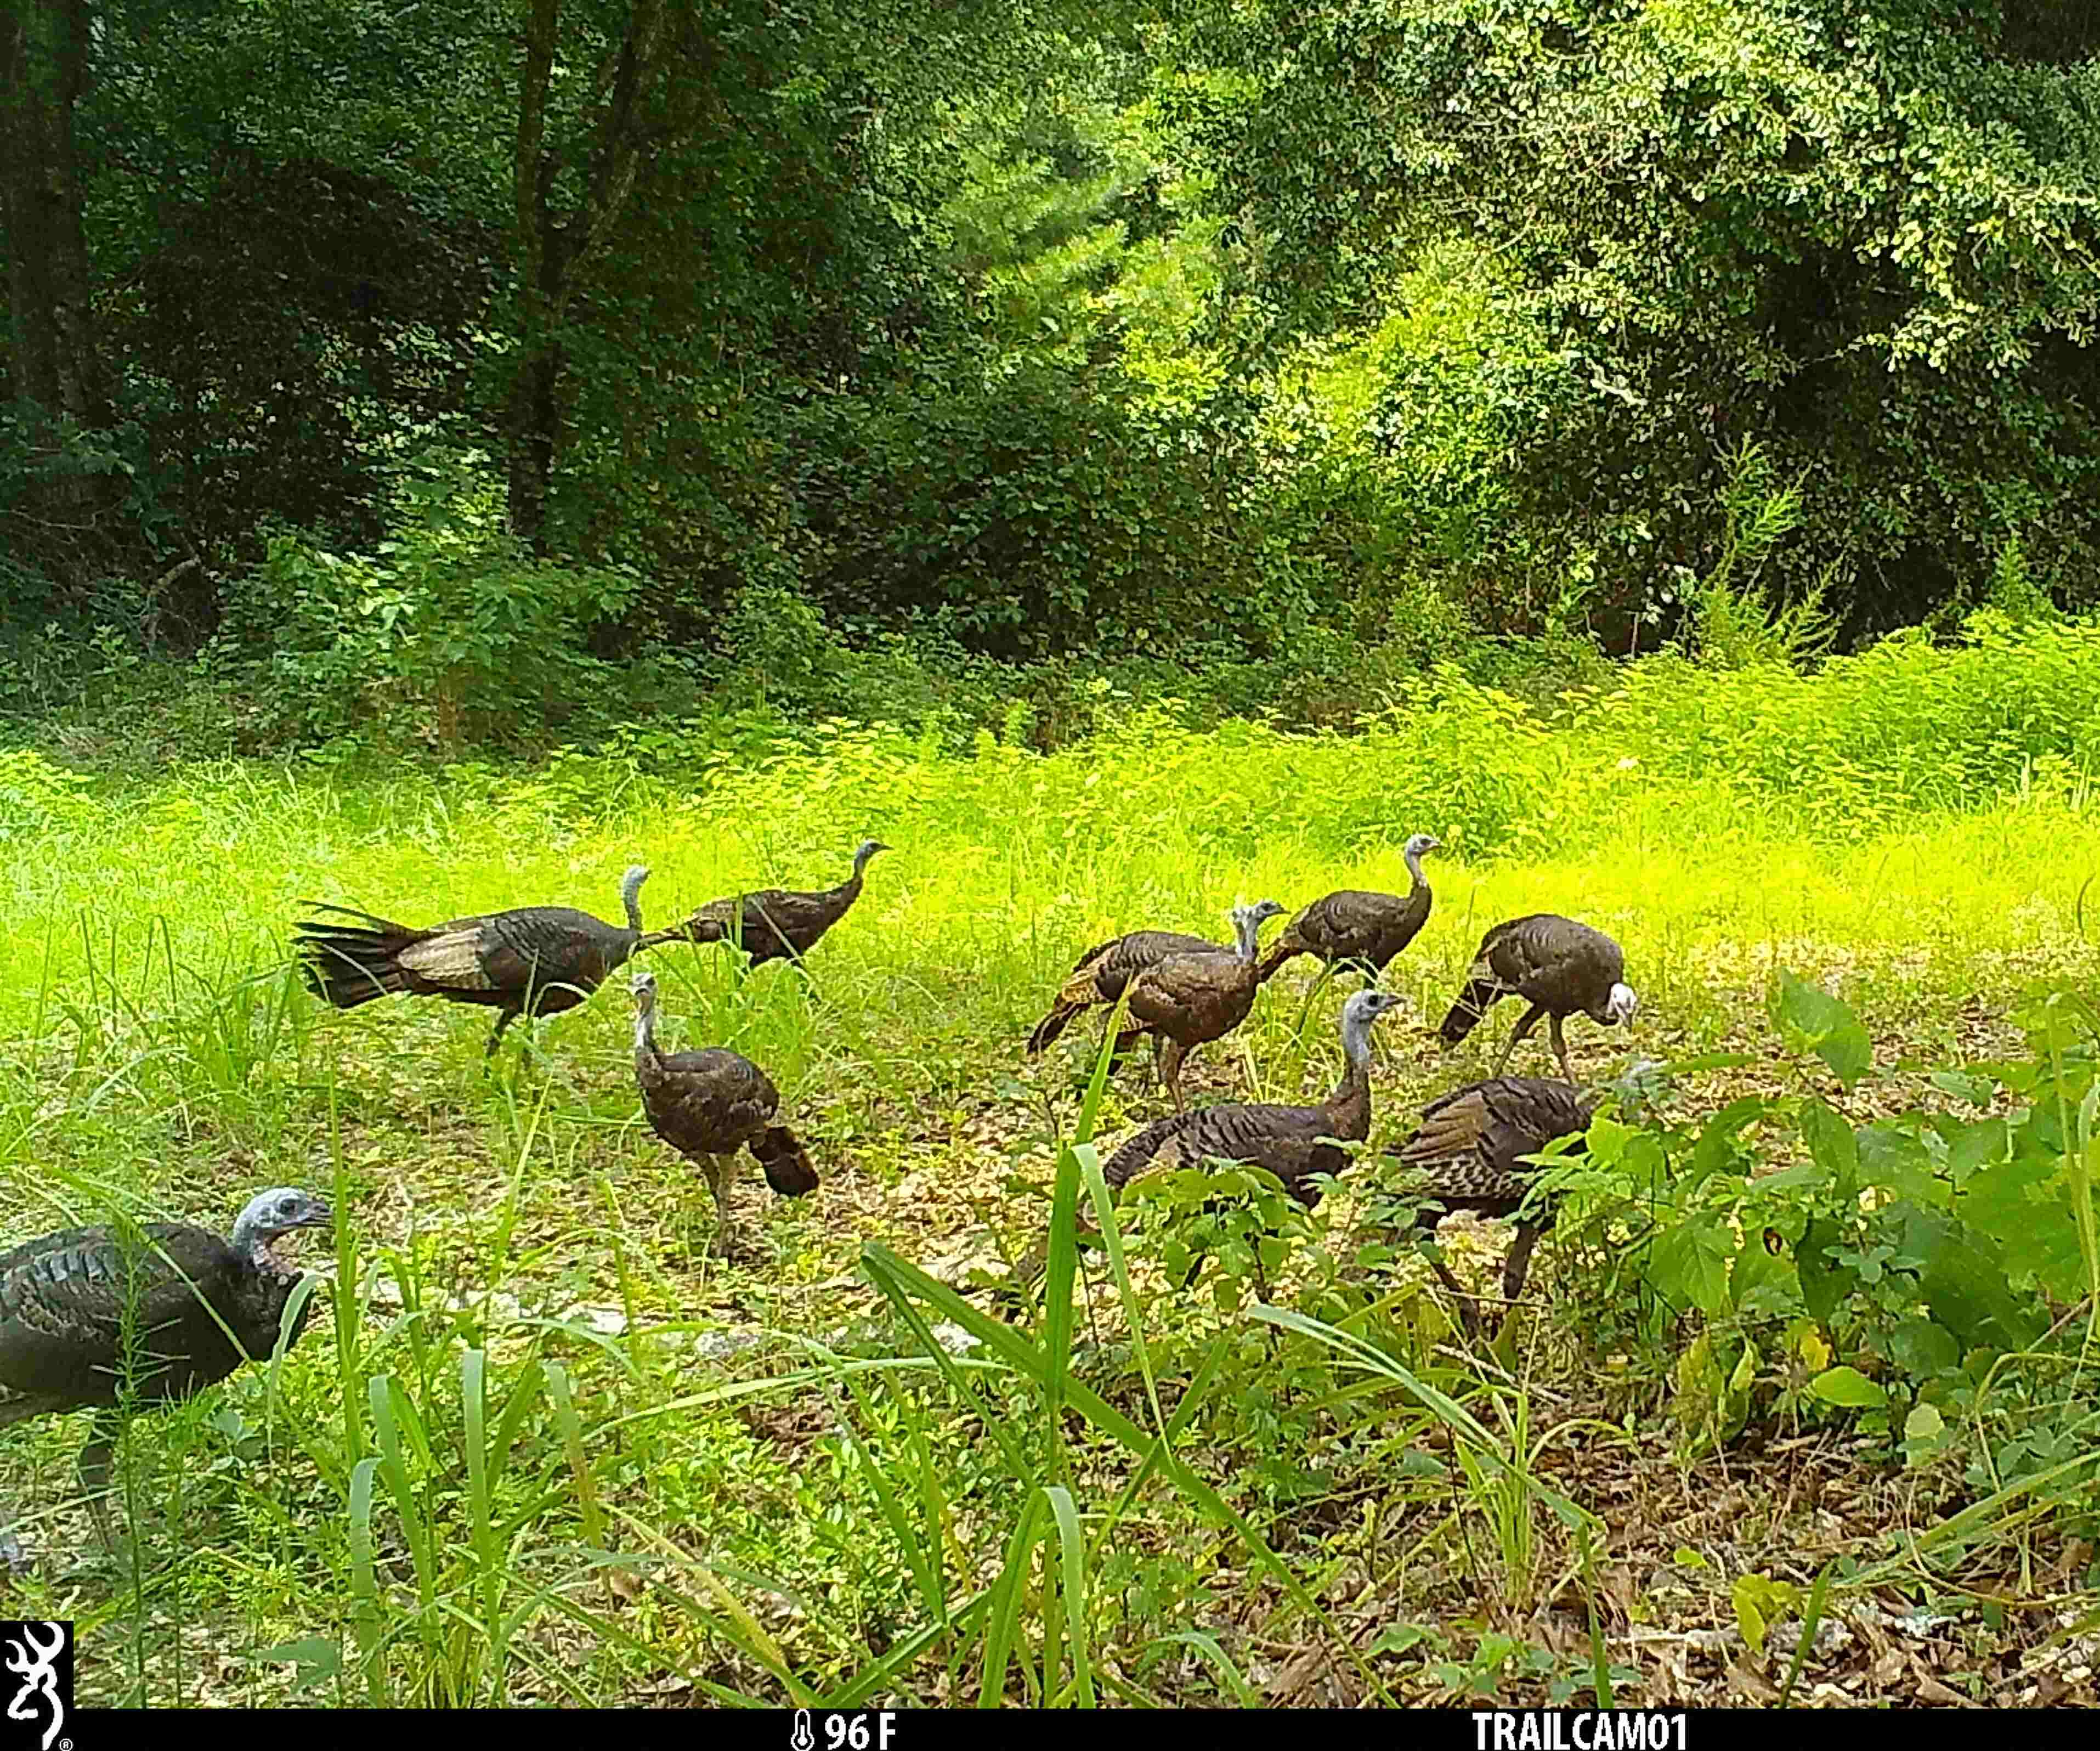 Game camera showing a flock of hen turkeys